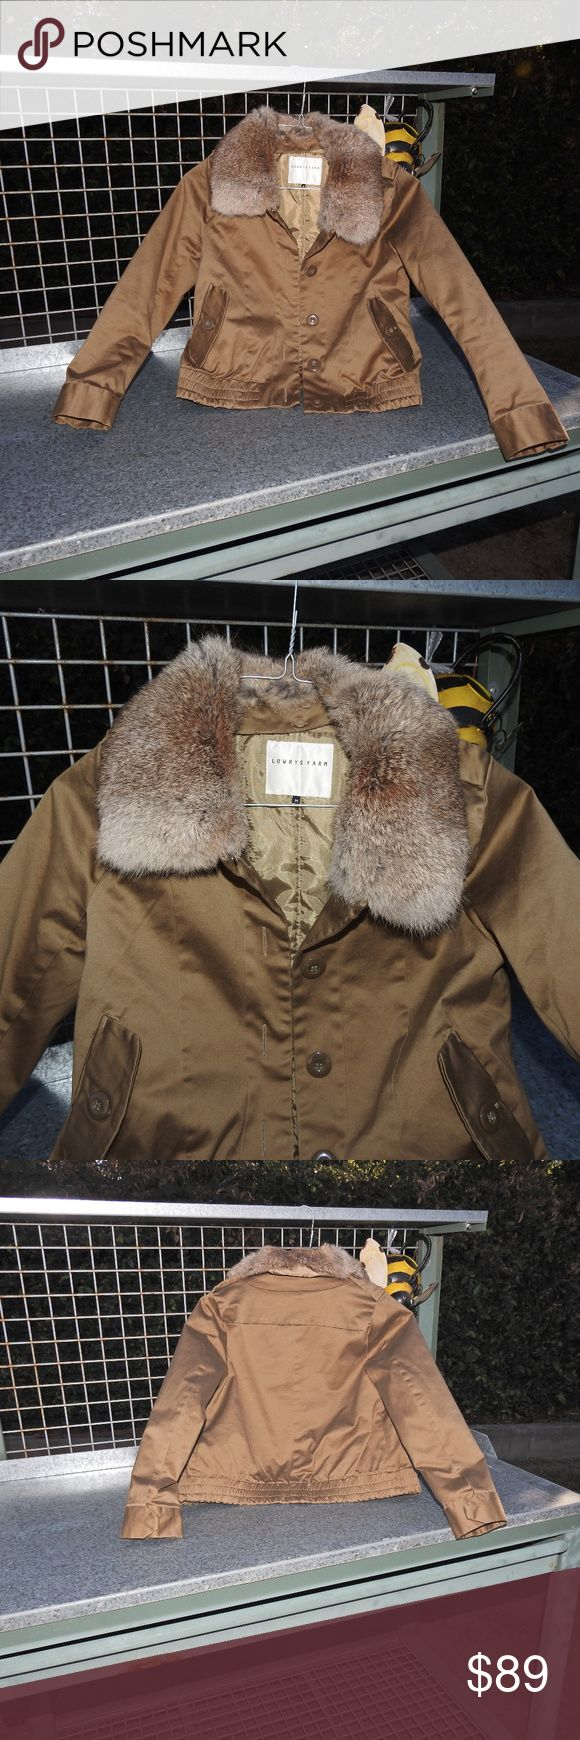 Lowrys Farm Tan Jacket with Fur Collar Sz Medium Lowrys Farm Tan Jacket with Fur Collar Sz Medium Lowrys Farm Jackets & Coats